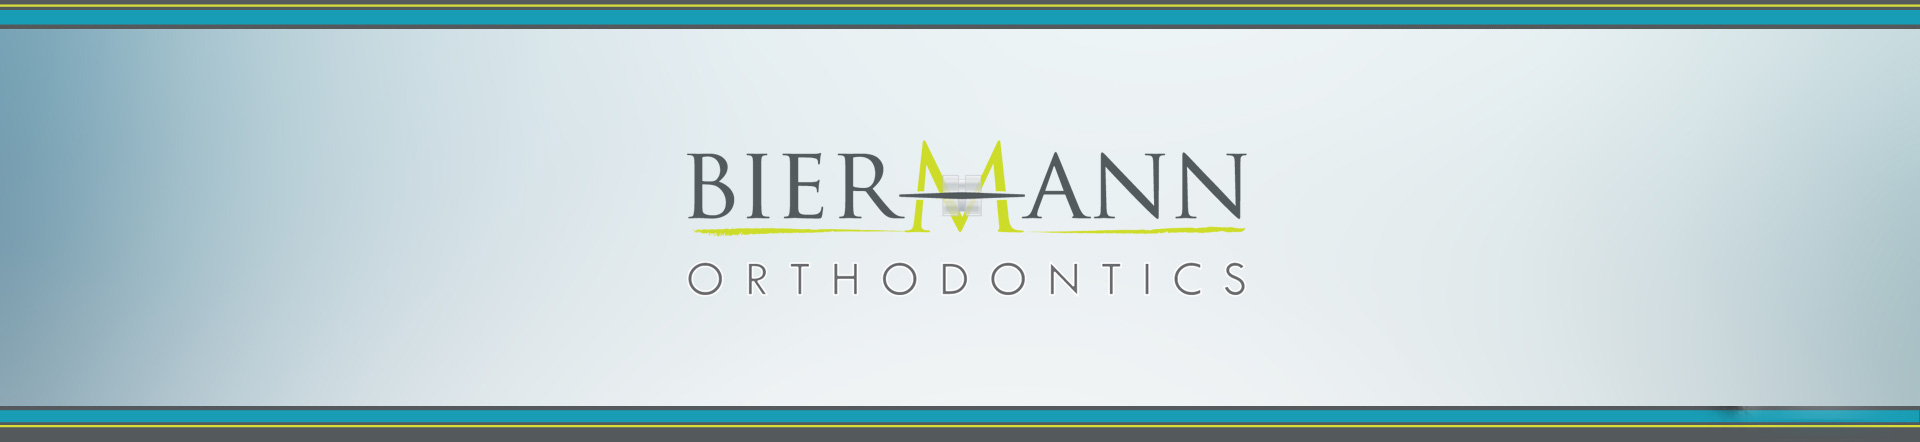 Dr. Biermann Orthodontics